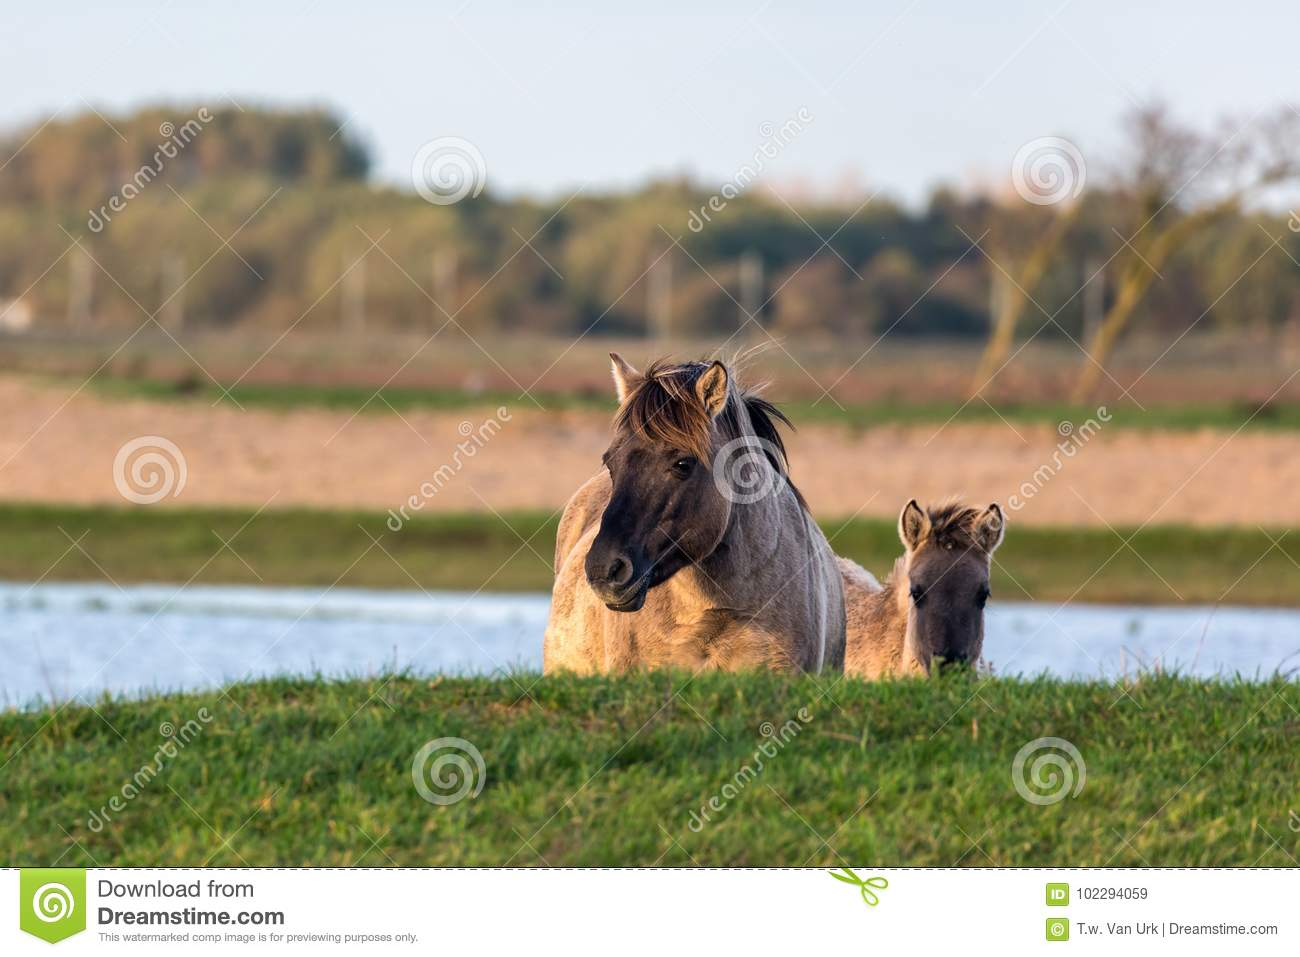 Dutch National Park Oostvaardersplassen with konik horse and foal